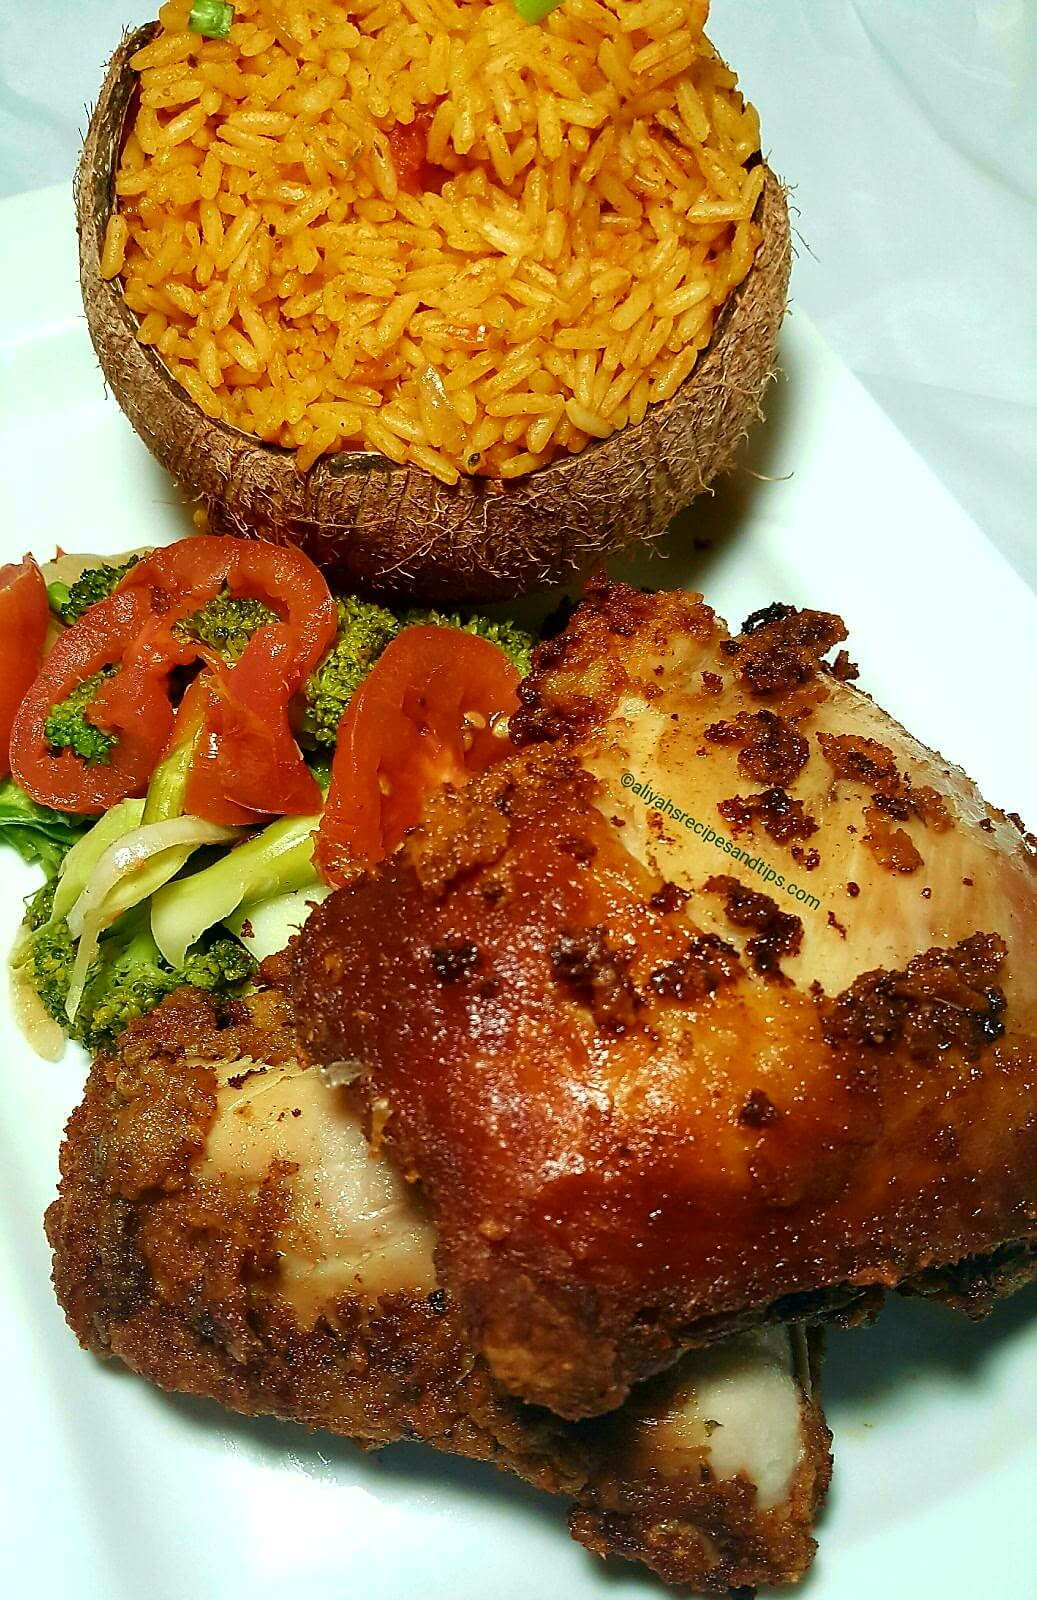 Coconut jollof rice, Nigerian jollof rice, recipe, beautiful, cooking, Ghana jollof, Ghana, traditional, African jollof rice, food, Senegalese, Chicken, Party jollof rice, Spicy, coconut jollof rice, Aliyah recipes, Party rice, Nigerian rice